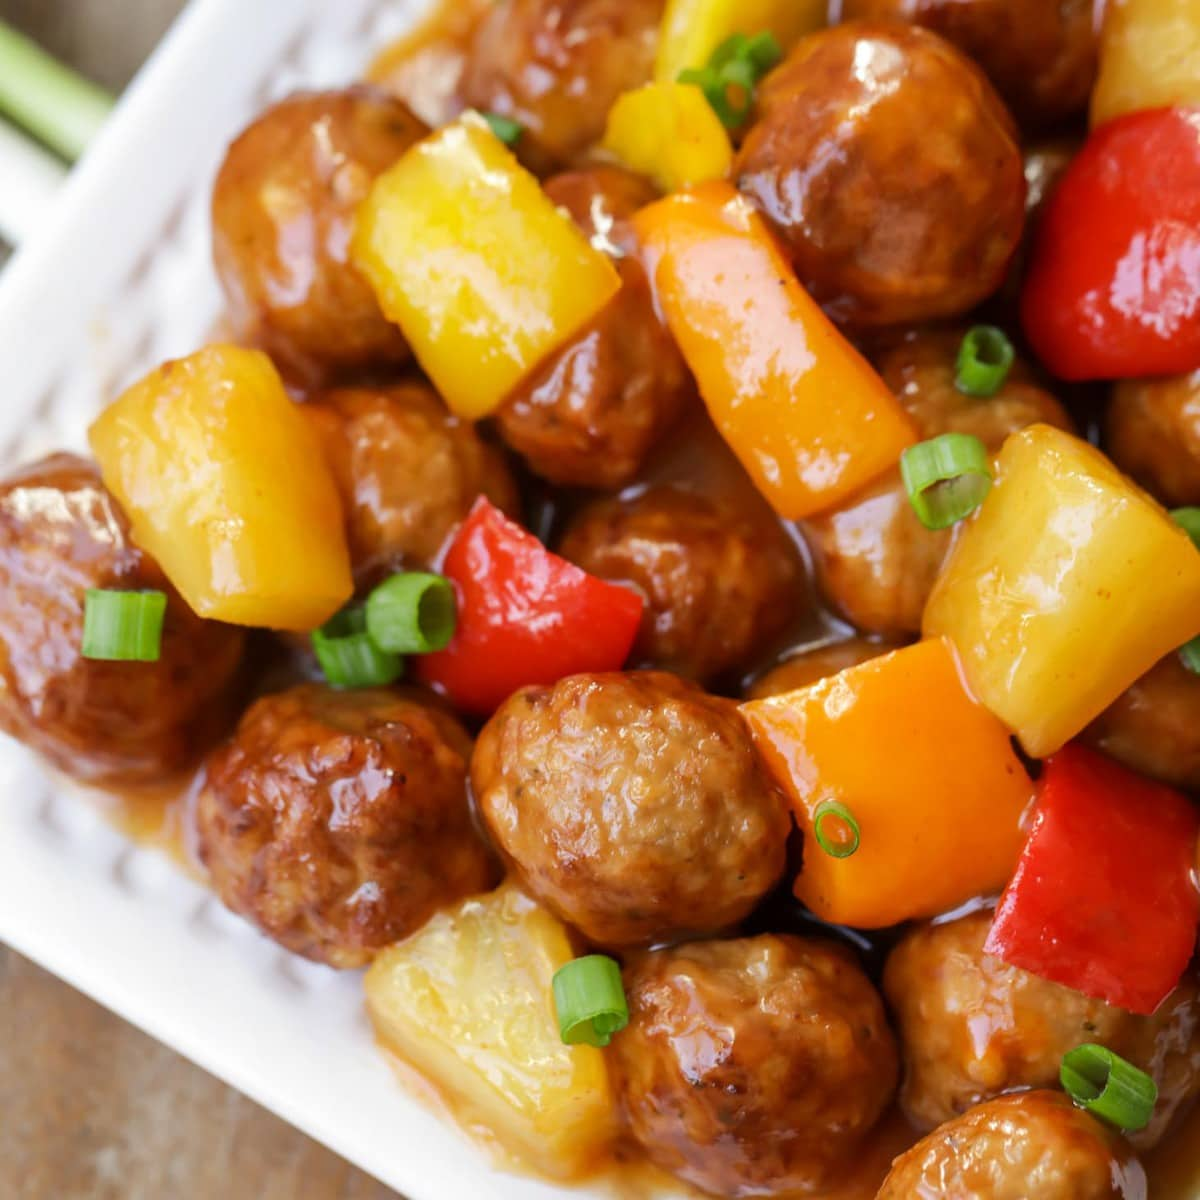 Sweet and Sour Meatballs with peppers and pineapple chunks